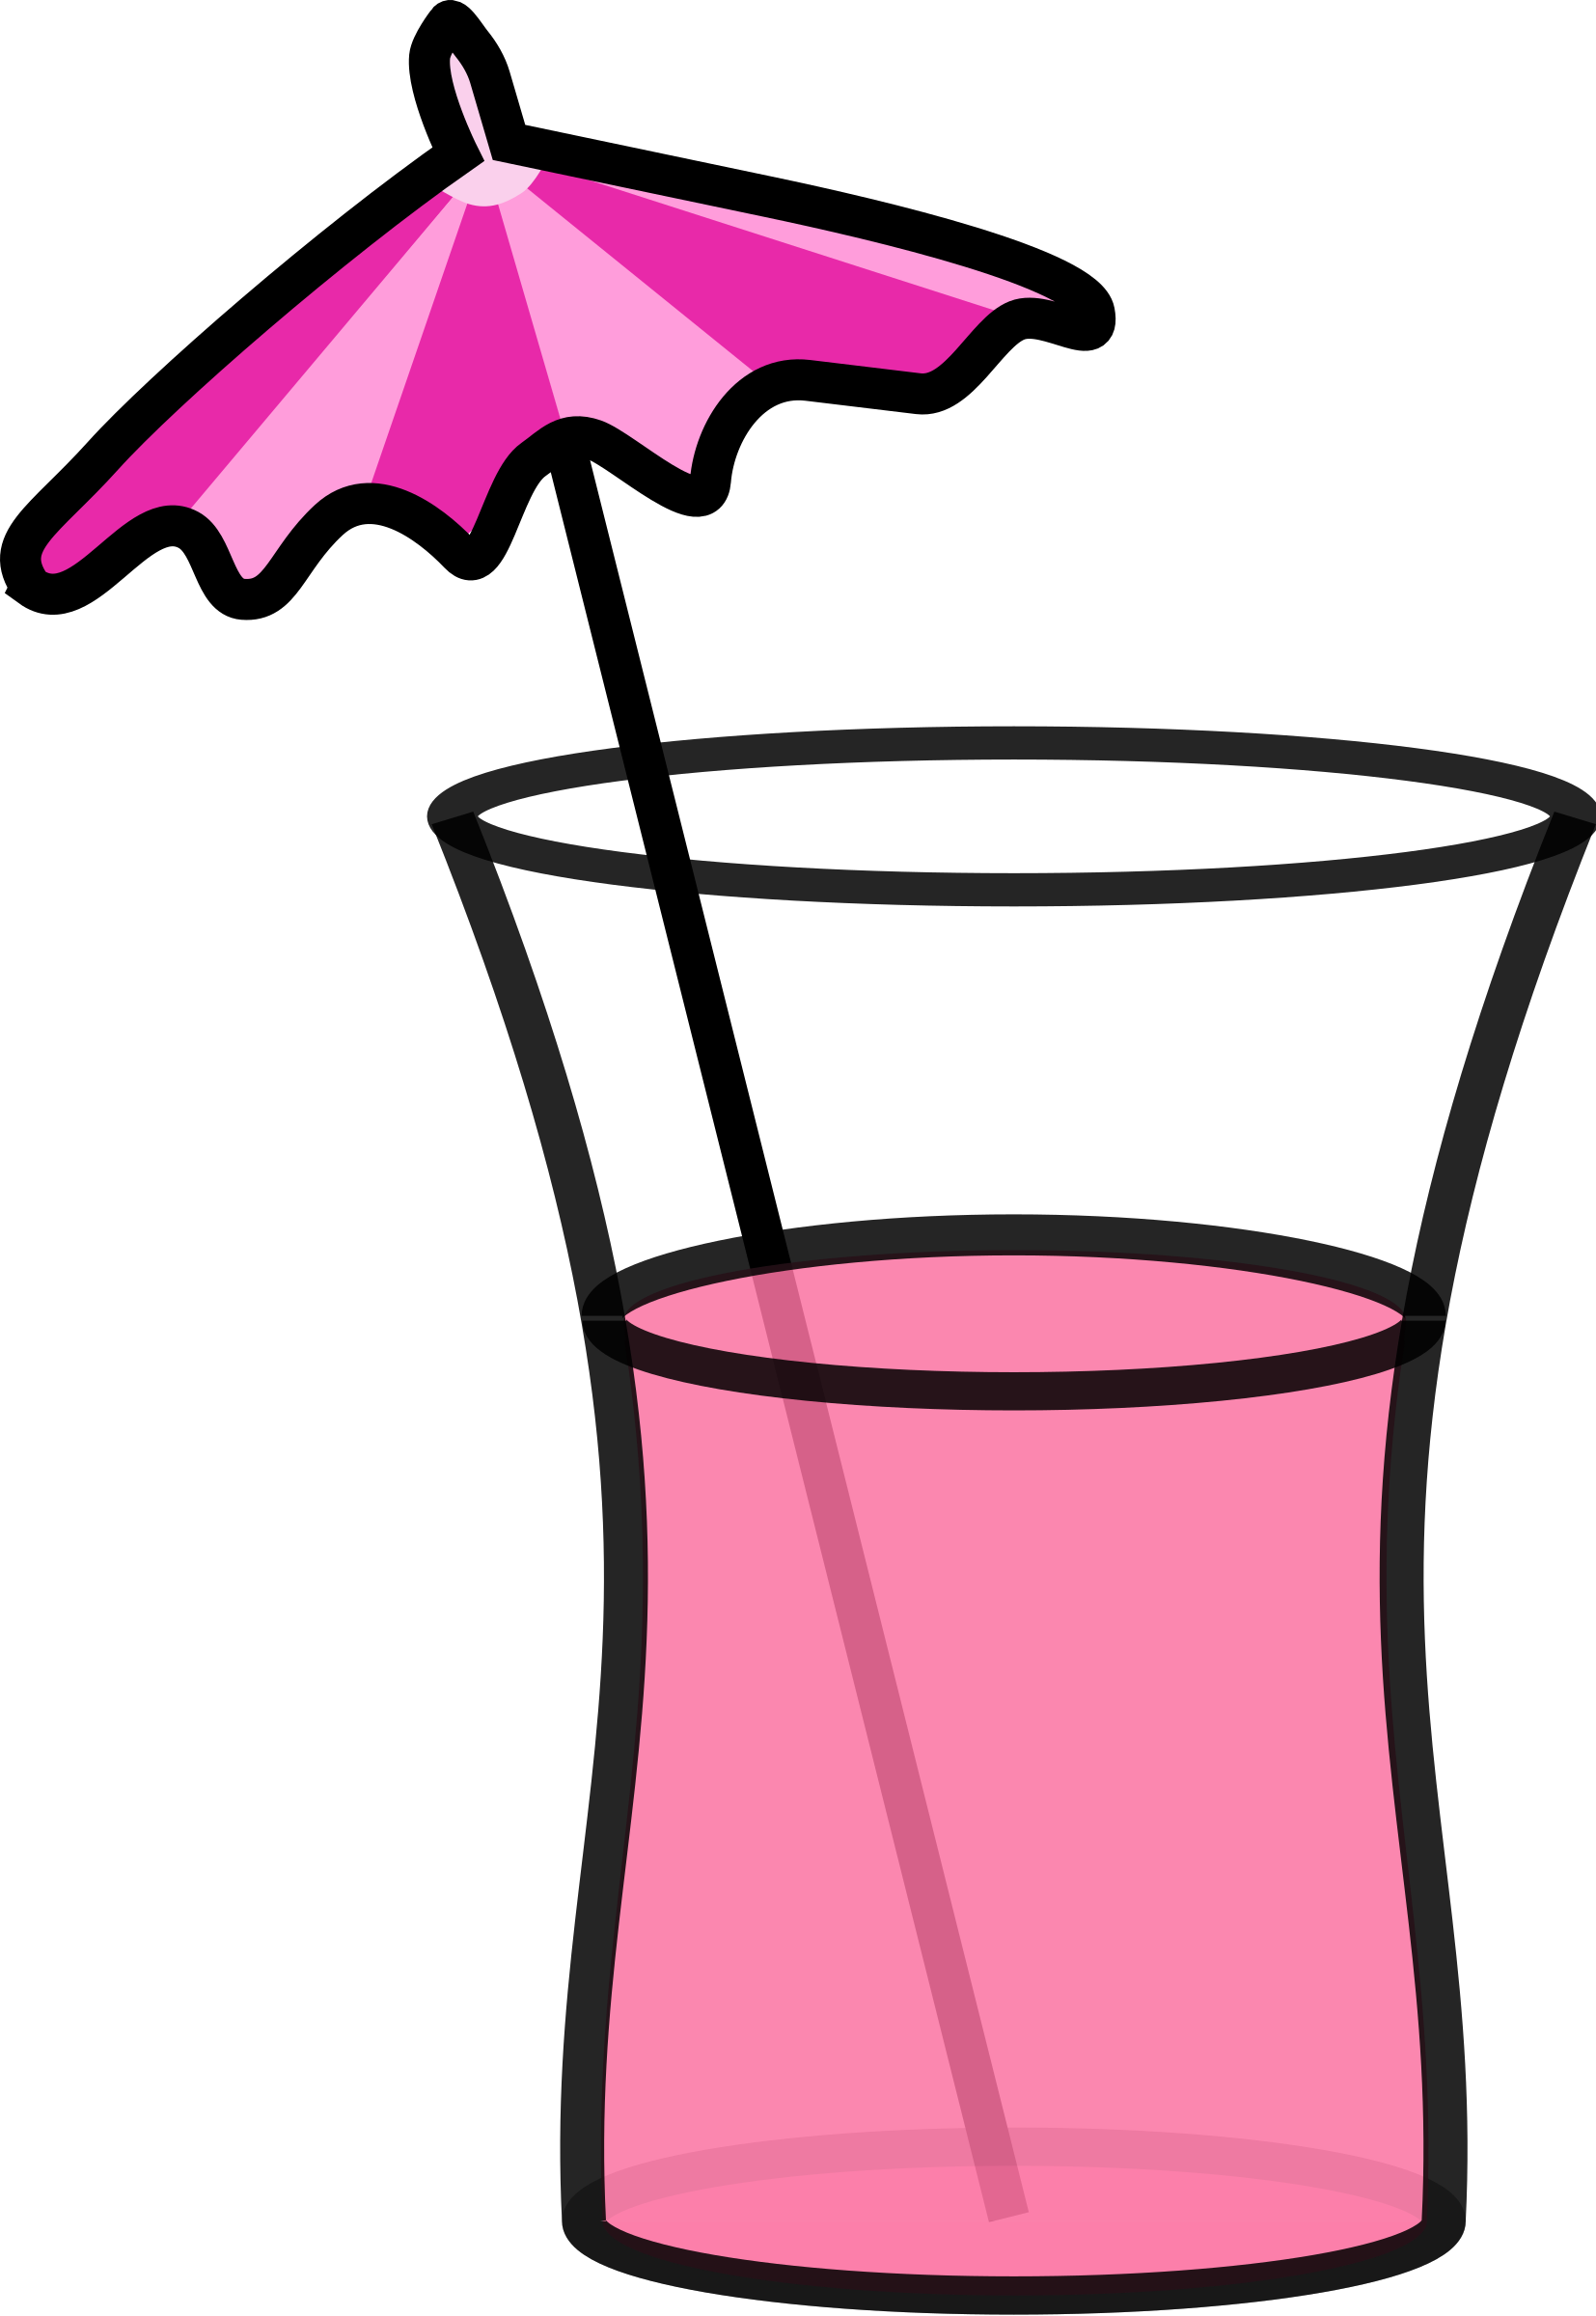 Umbrella Drink drawing free image.